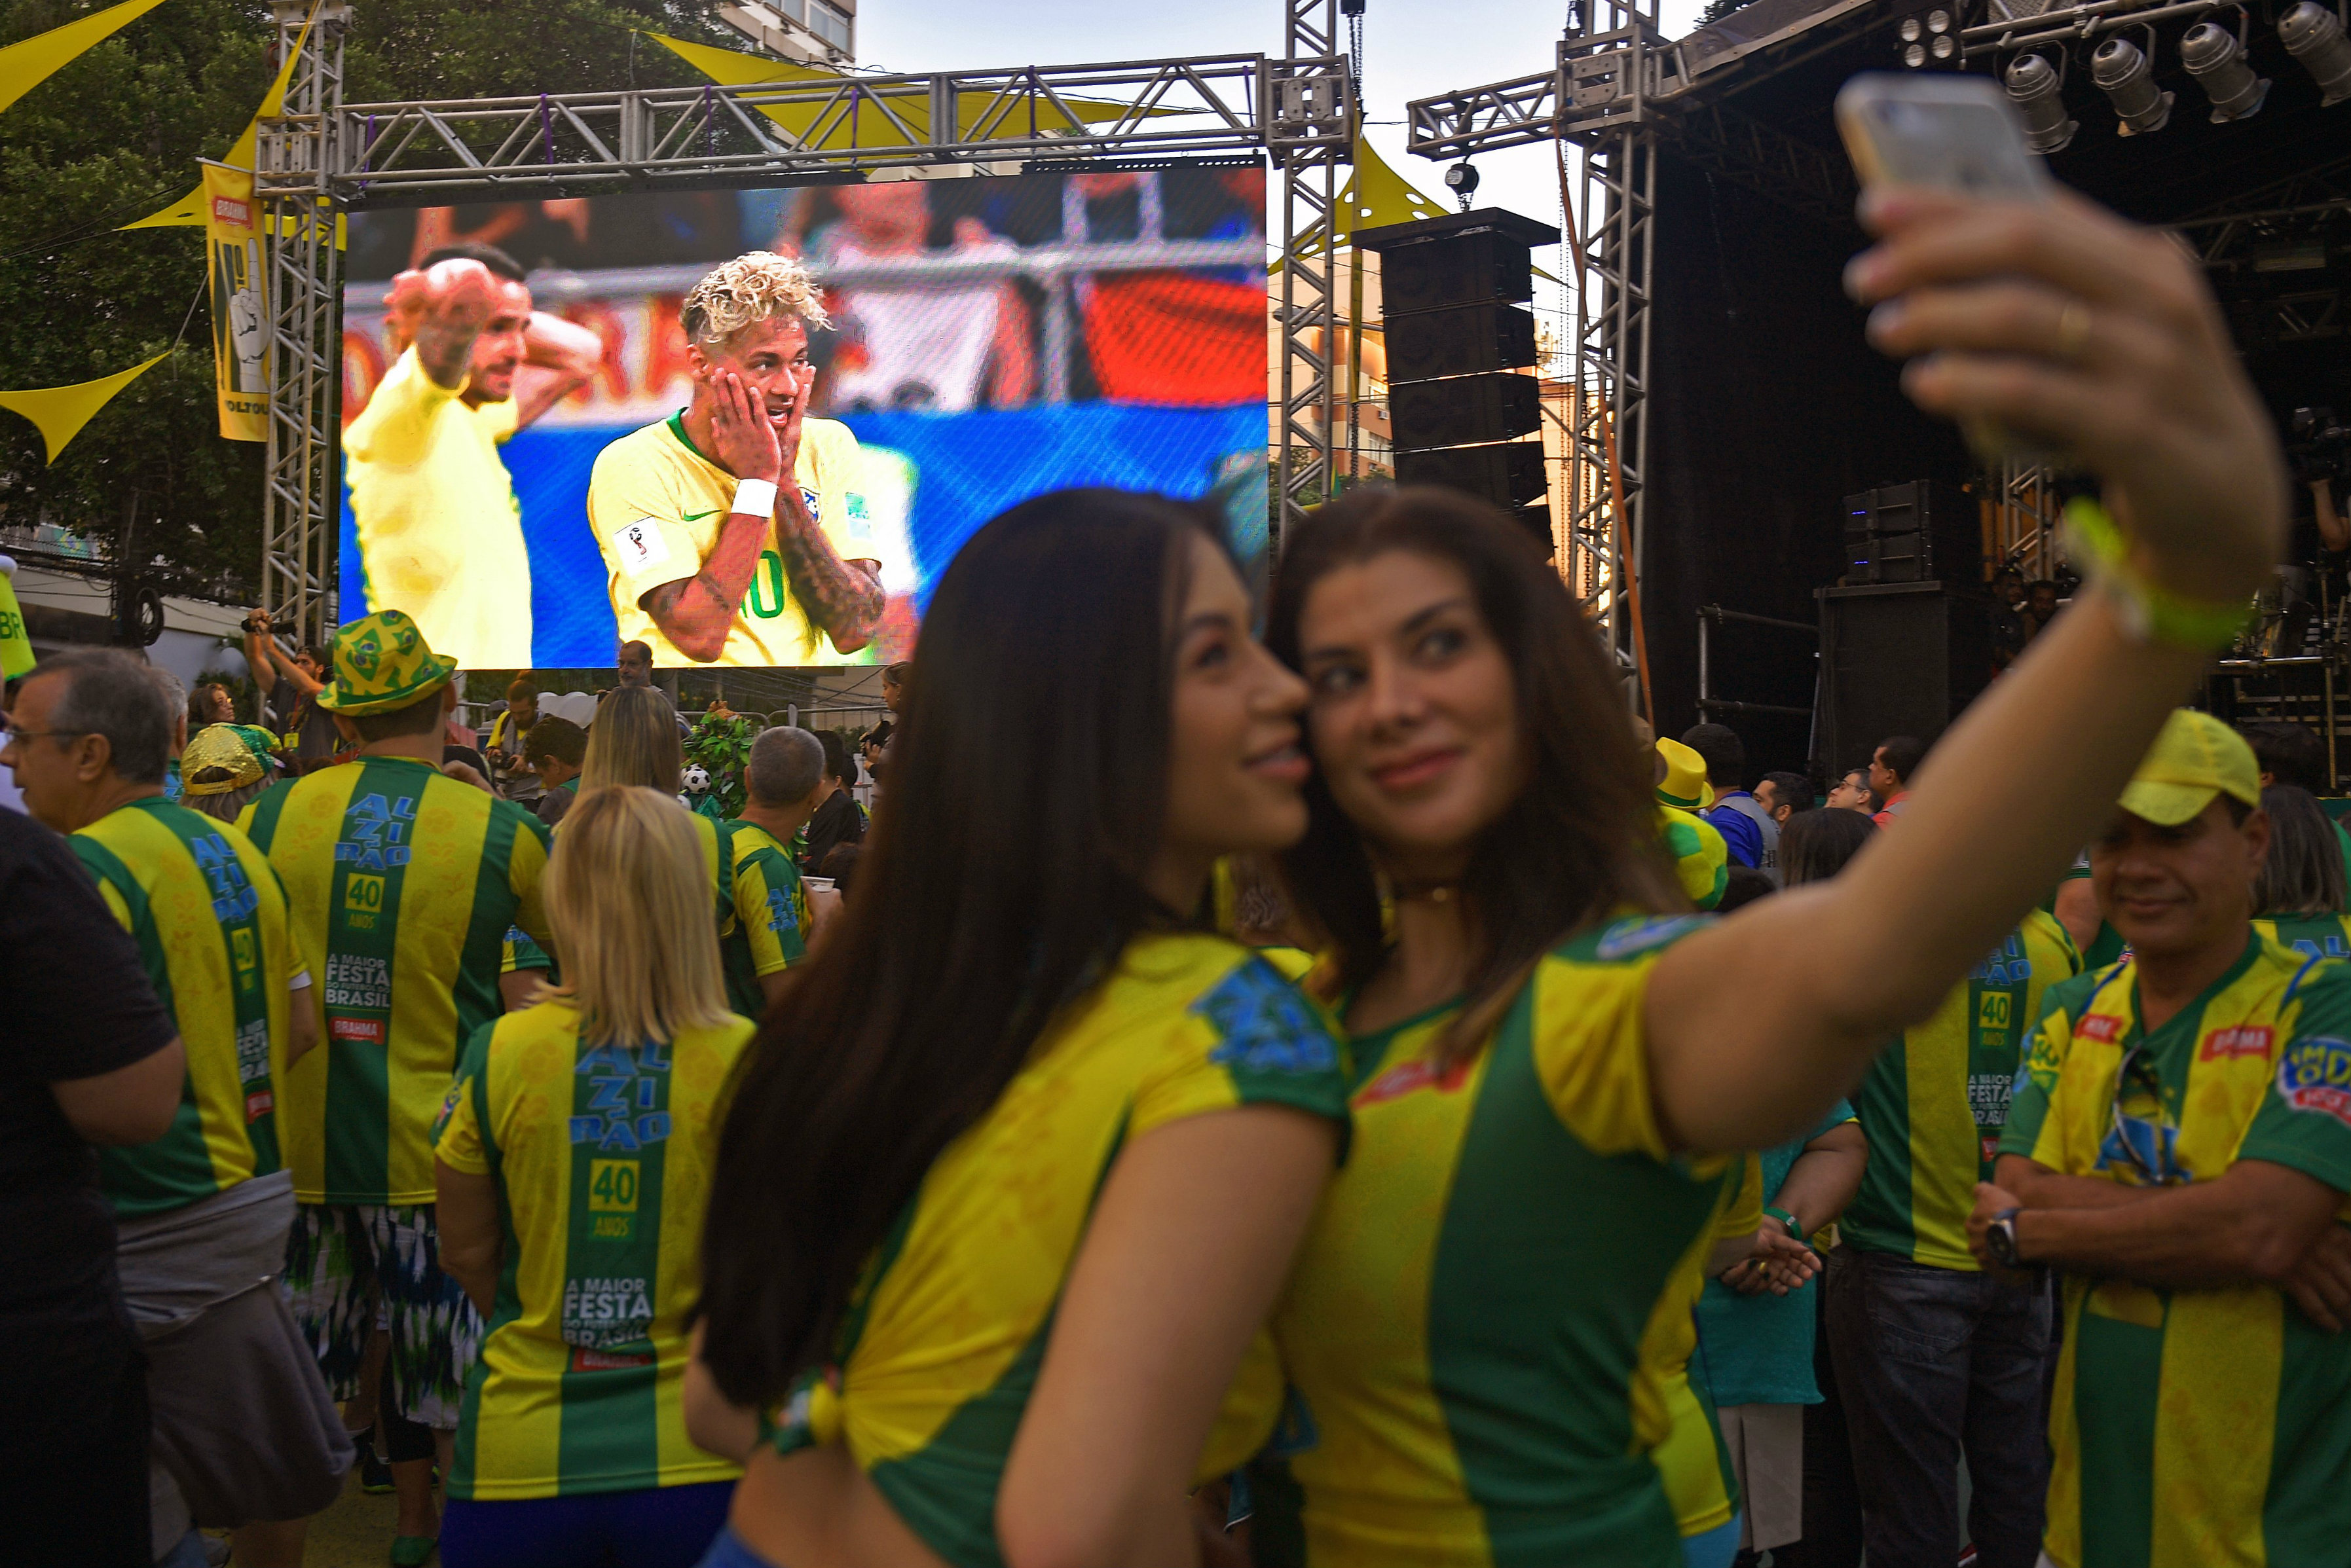 A couple of Brazil fans take a selfie at one of the FIFA Fan Fests.